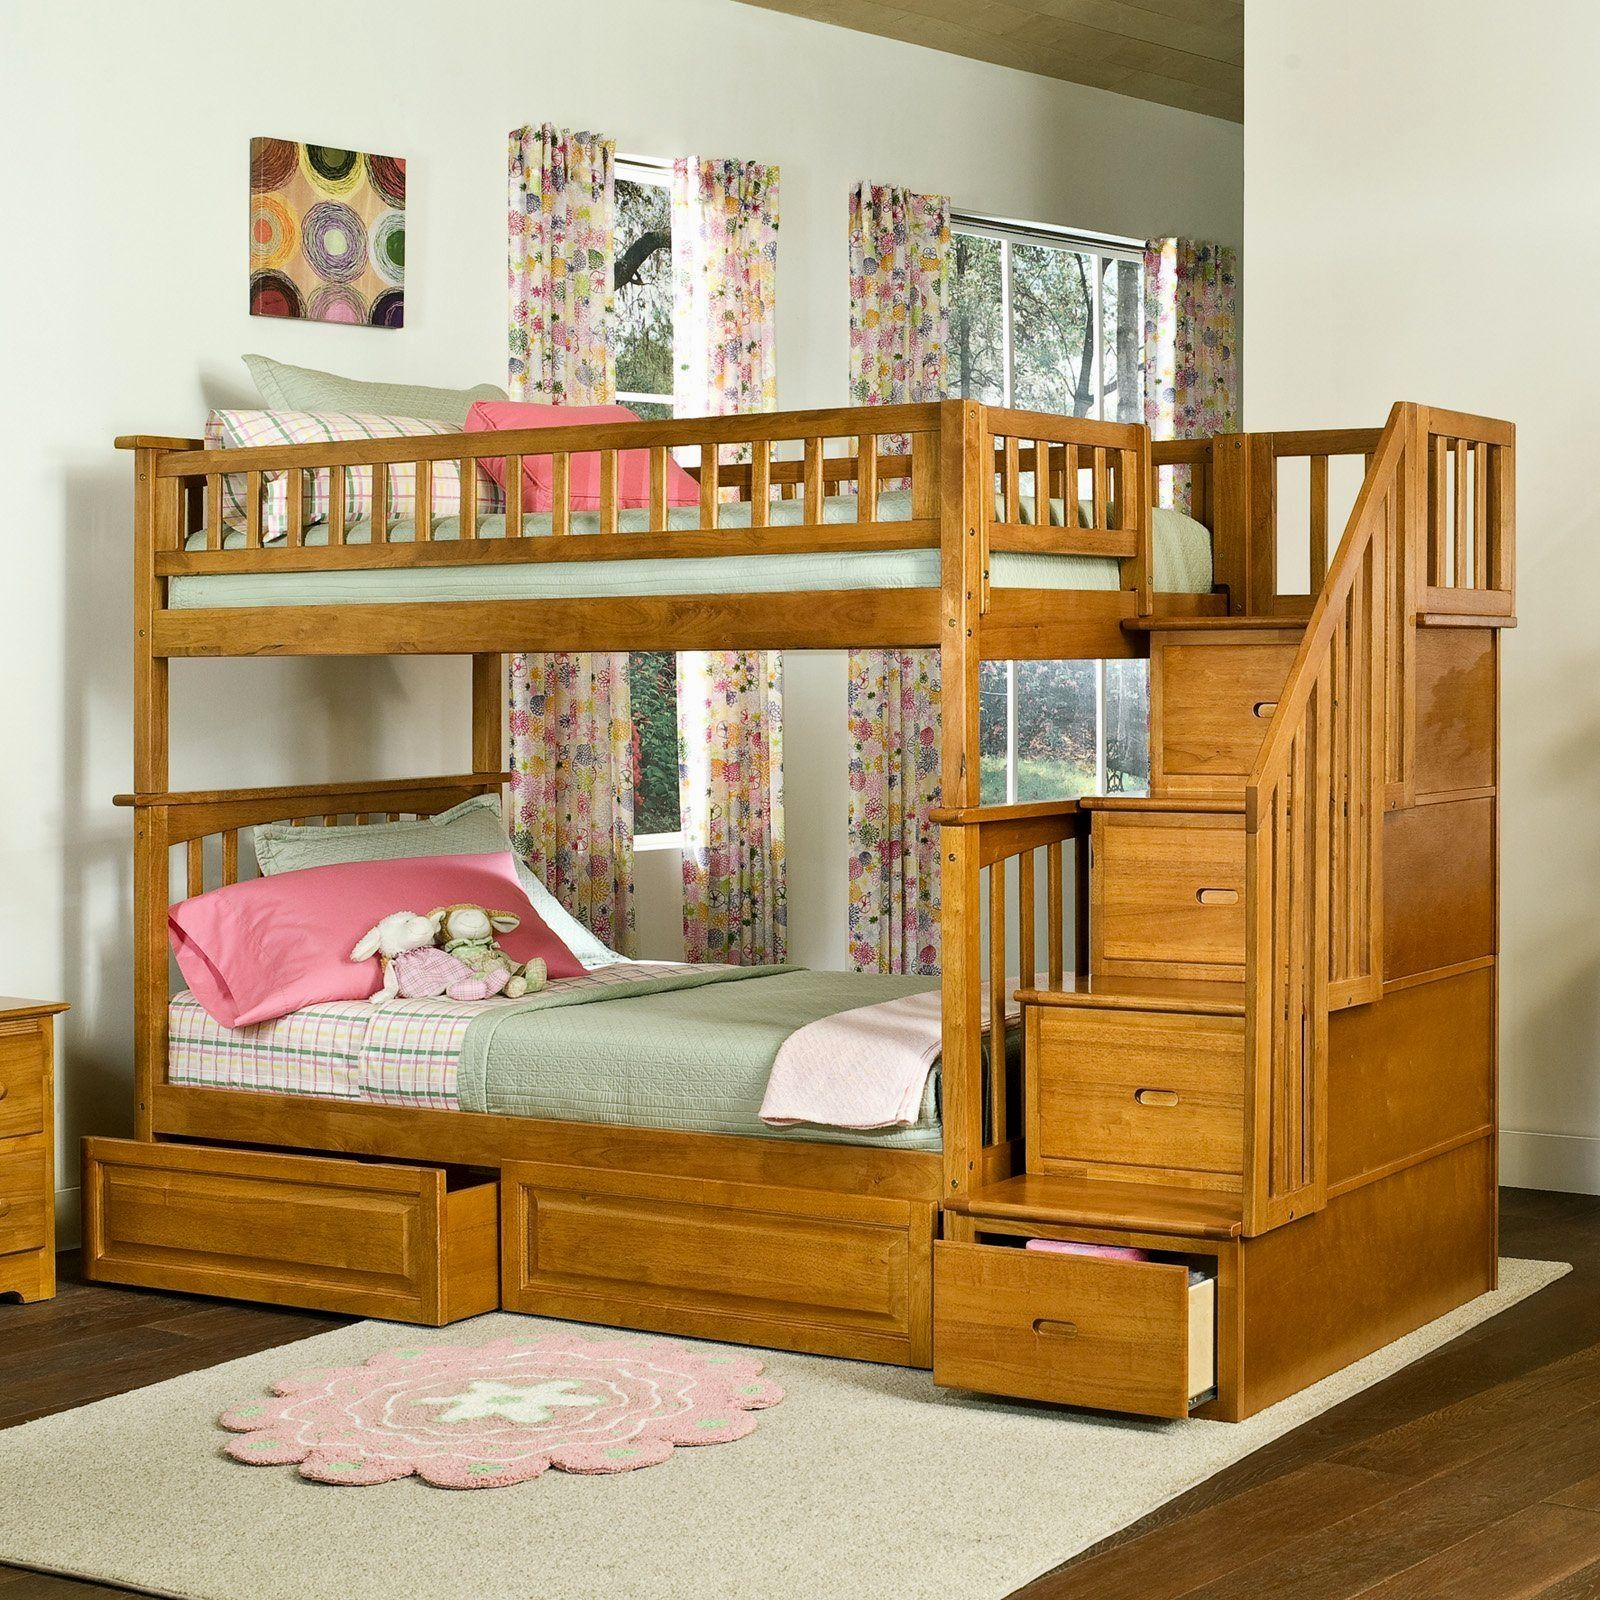 Viv + Rae Henry Bunk Bed With Storage Configuration Twin